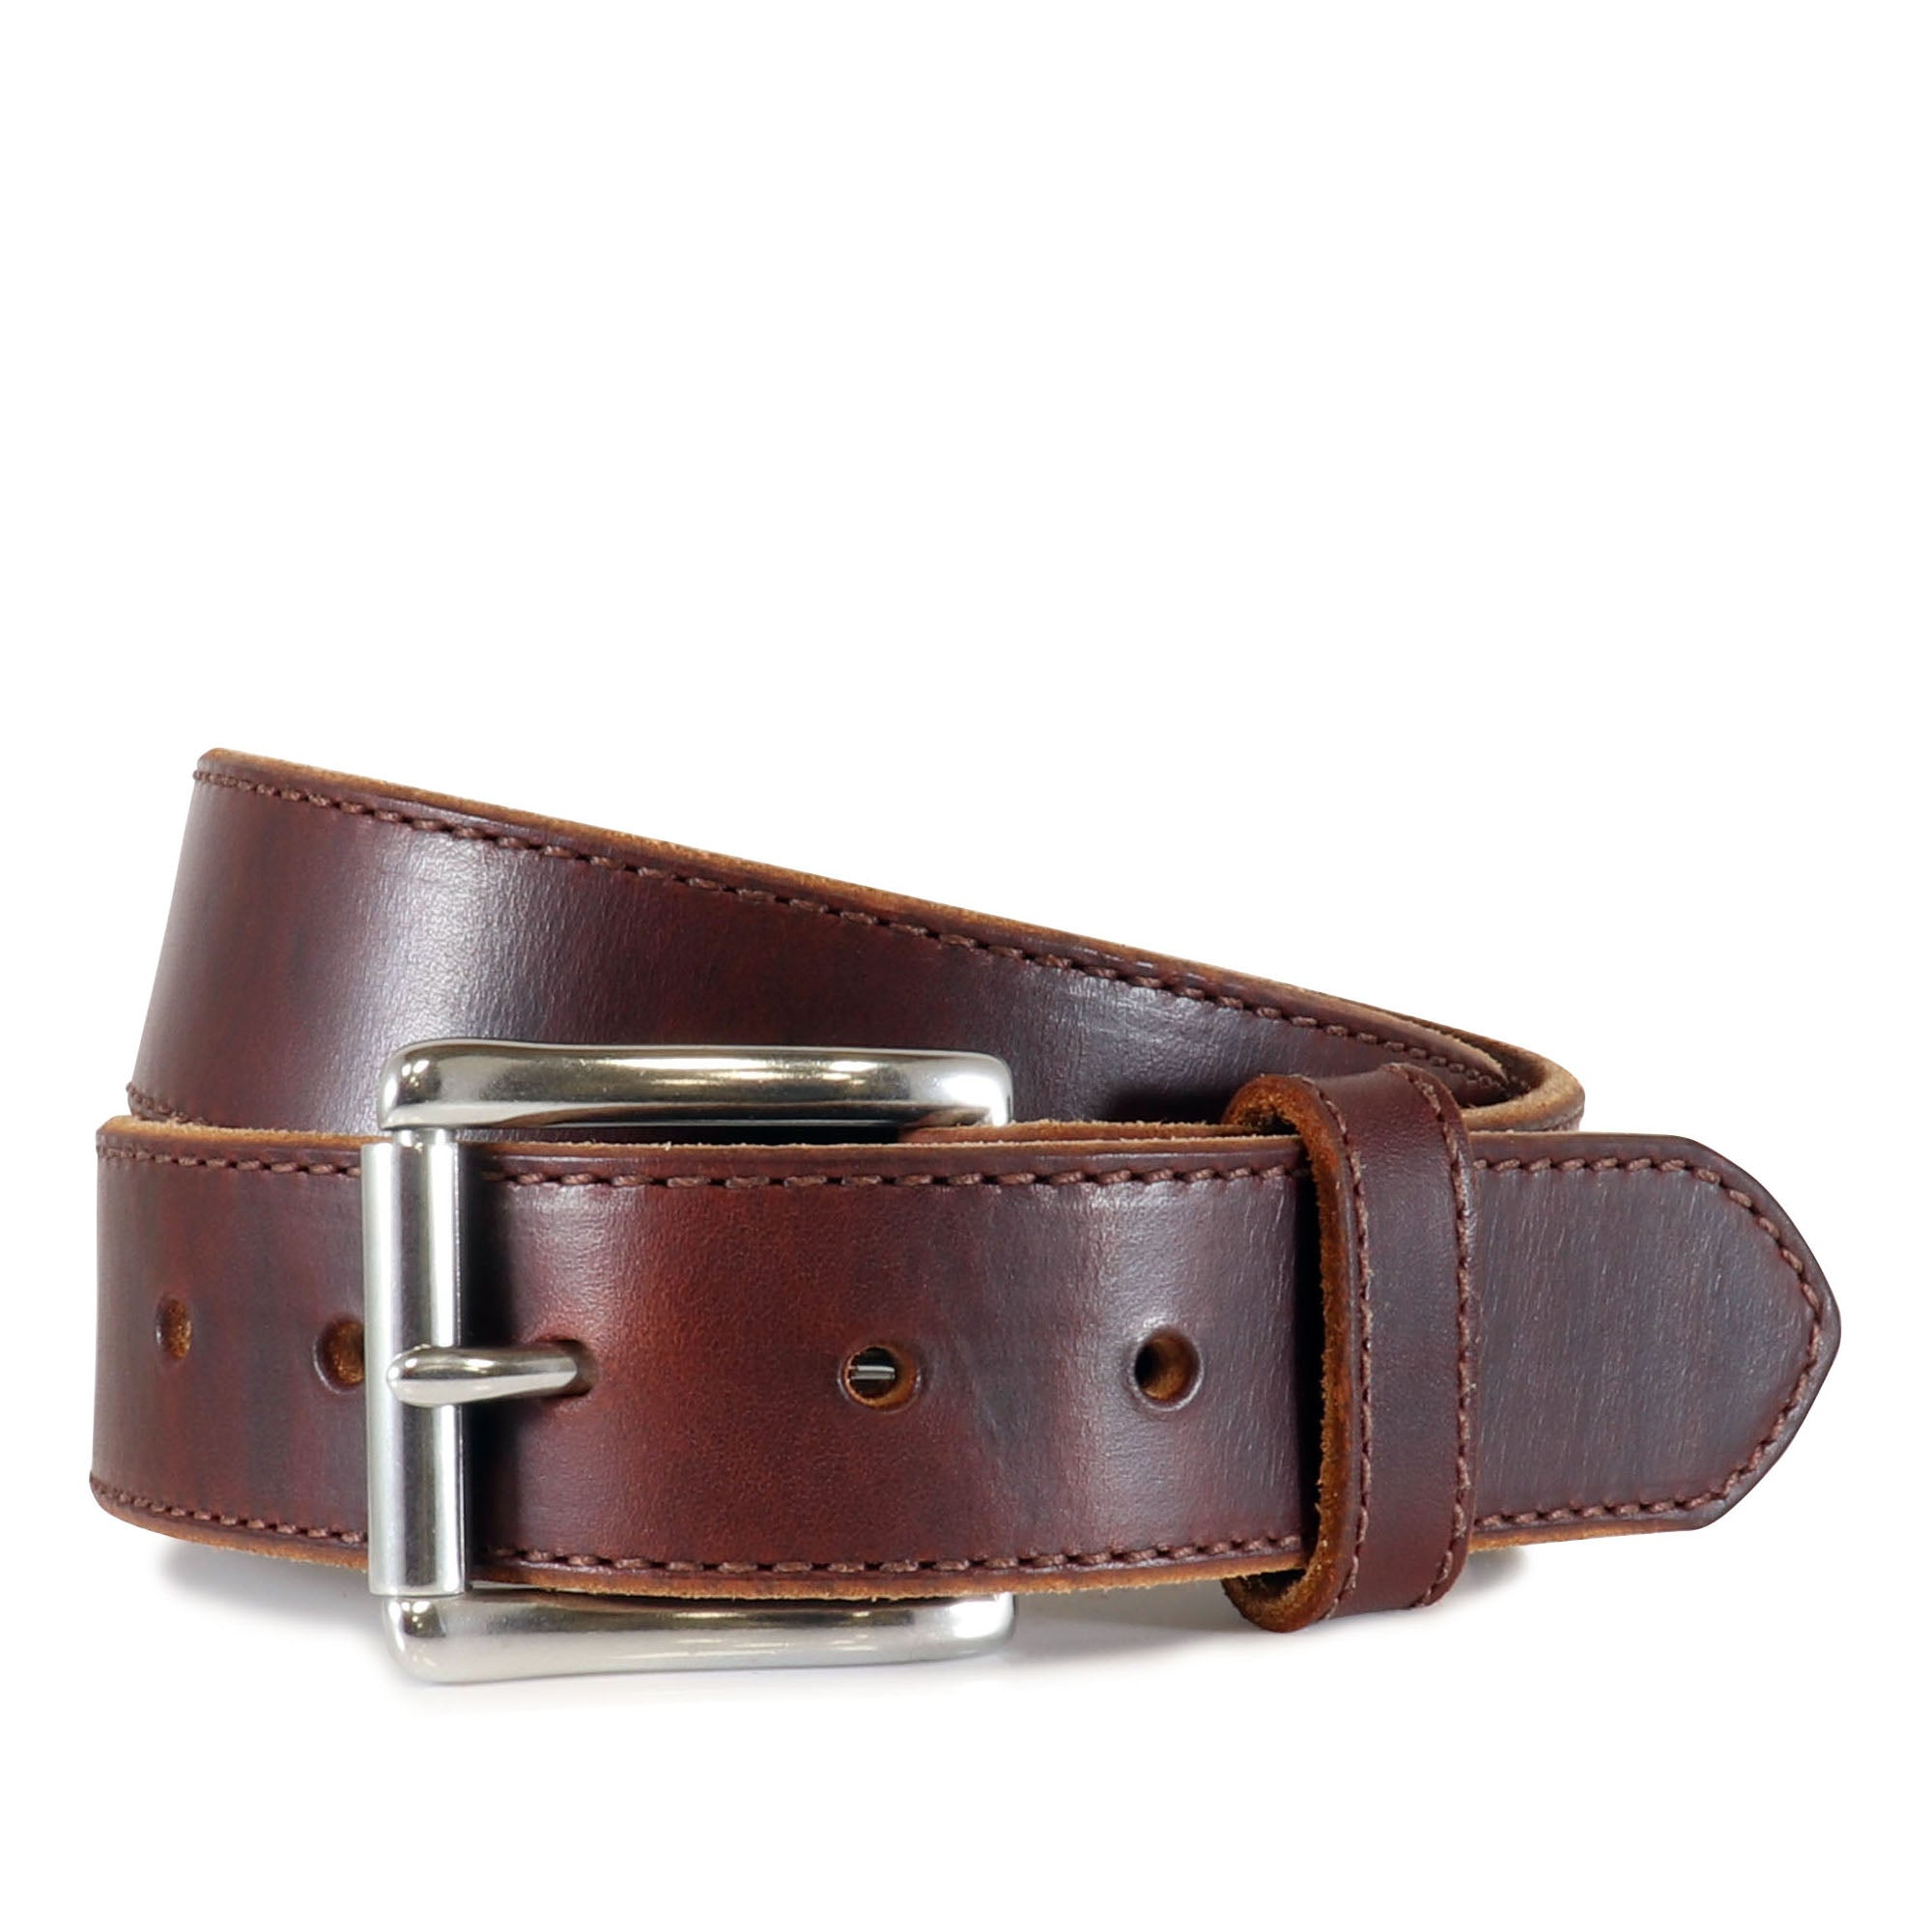 Casual Belt #7606 Classic Latigo Leather